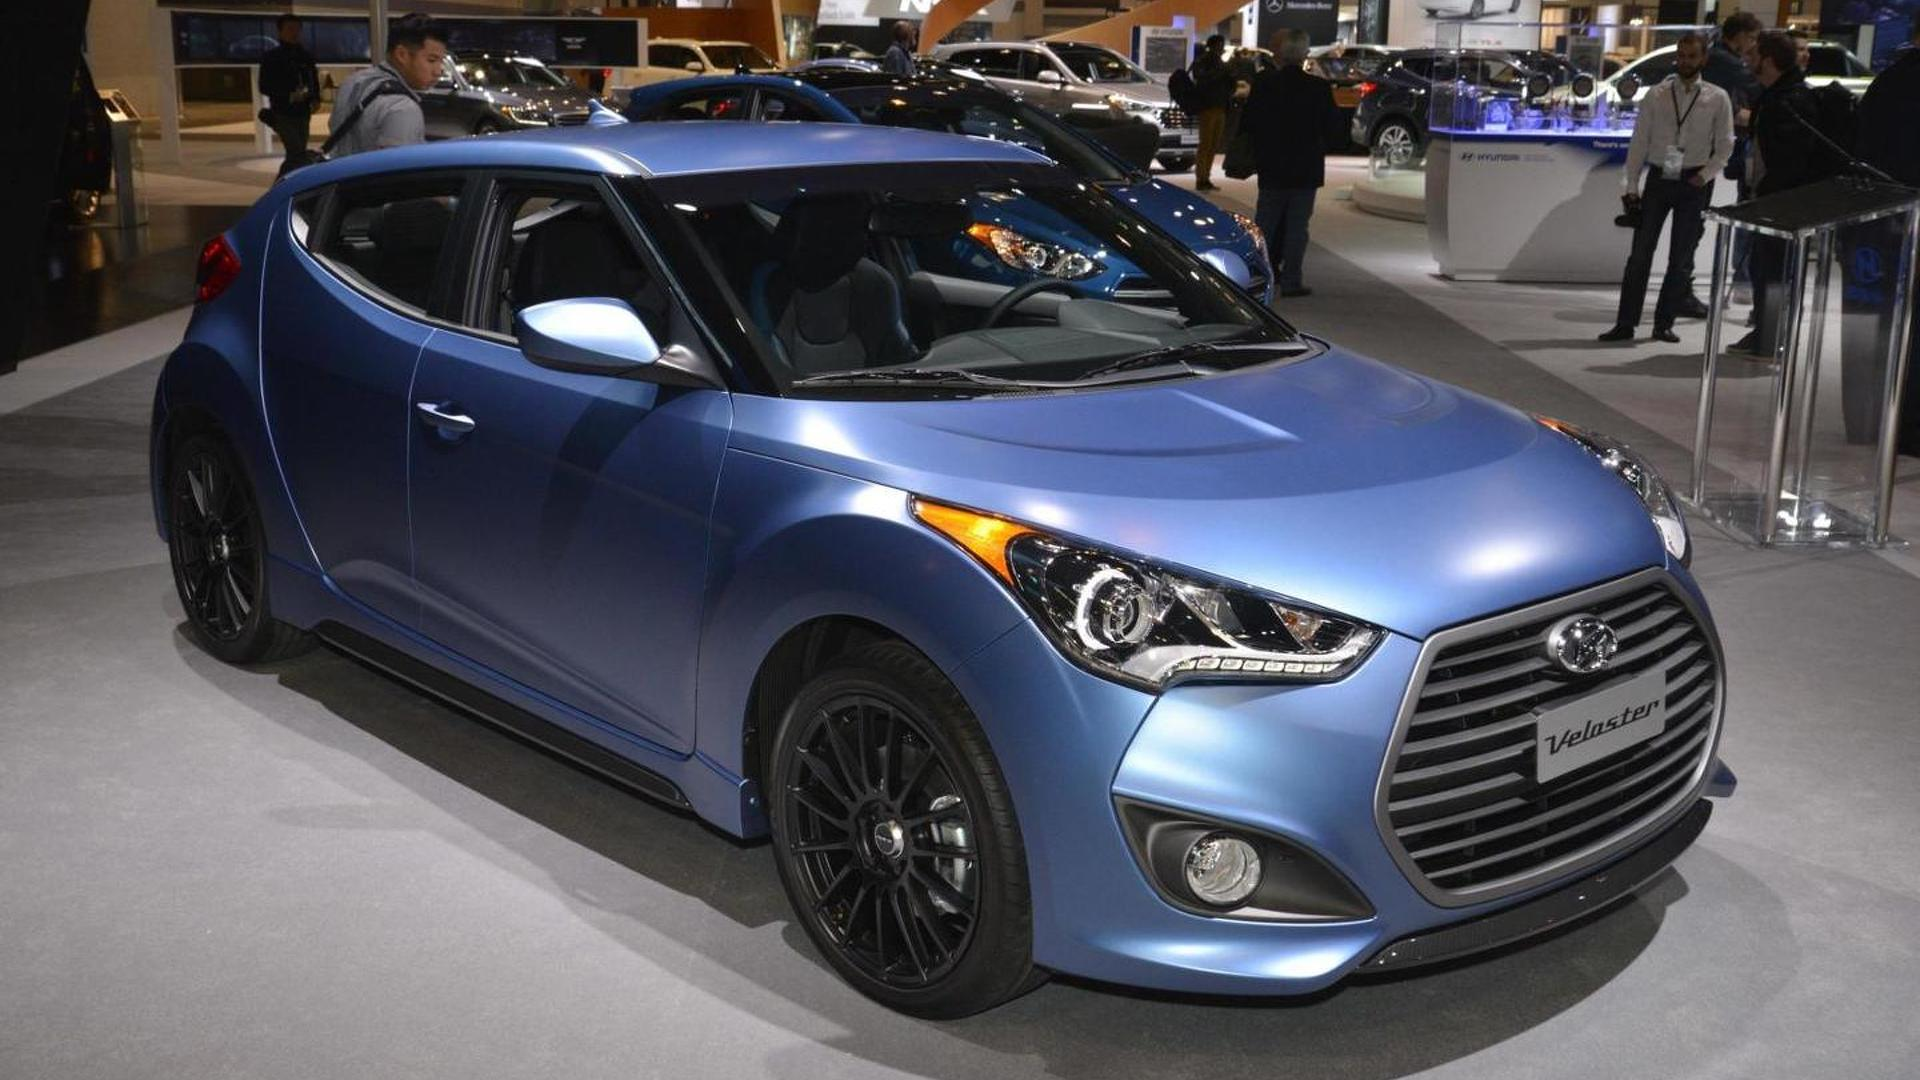 r spec review turbo veloster hyundai